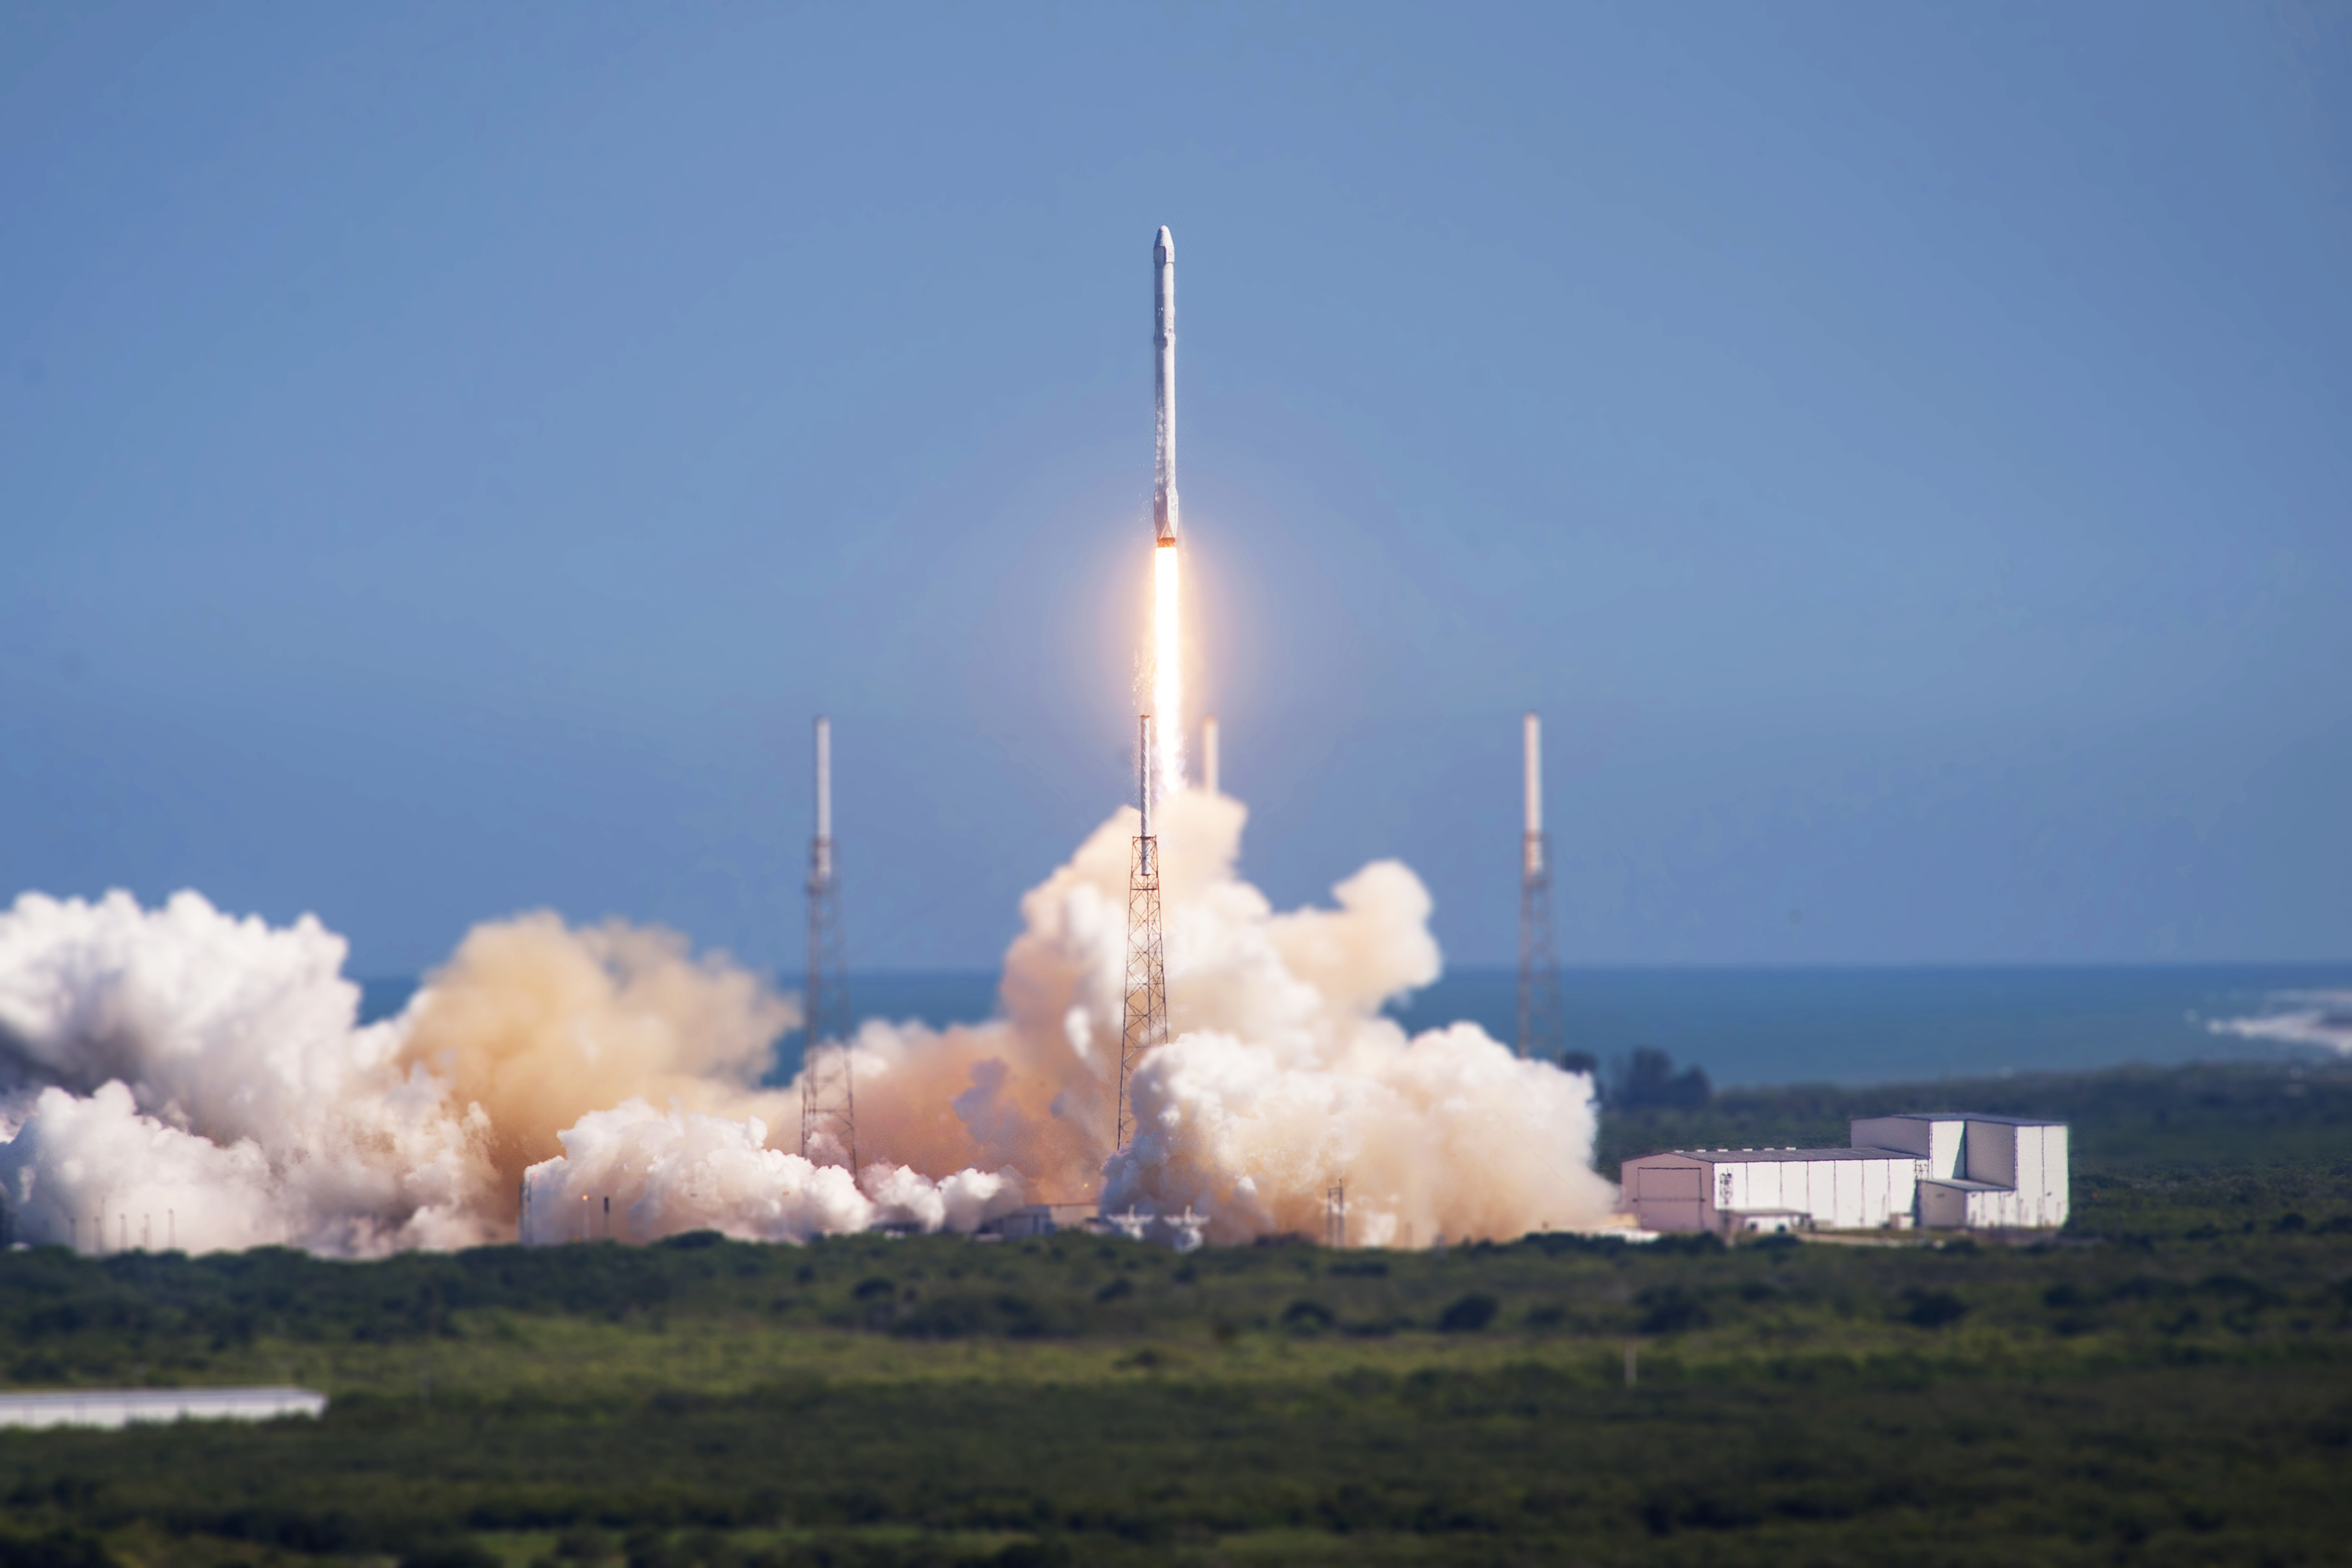 first tilt shift spacex falcon 9 launches via r tiltshift by runphilrun